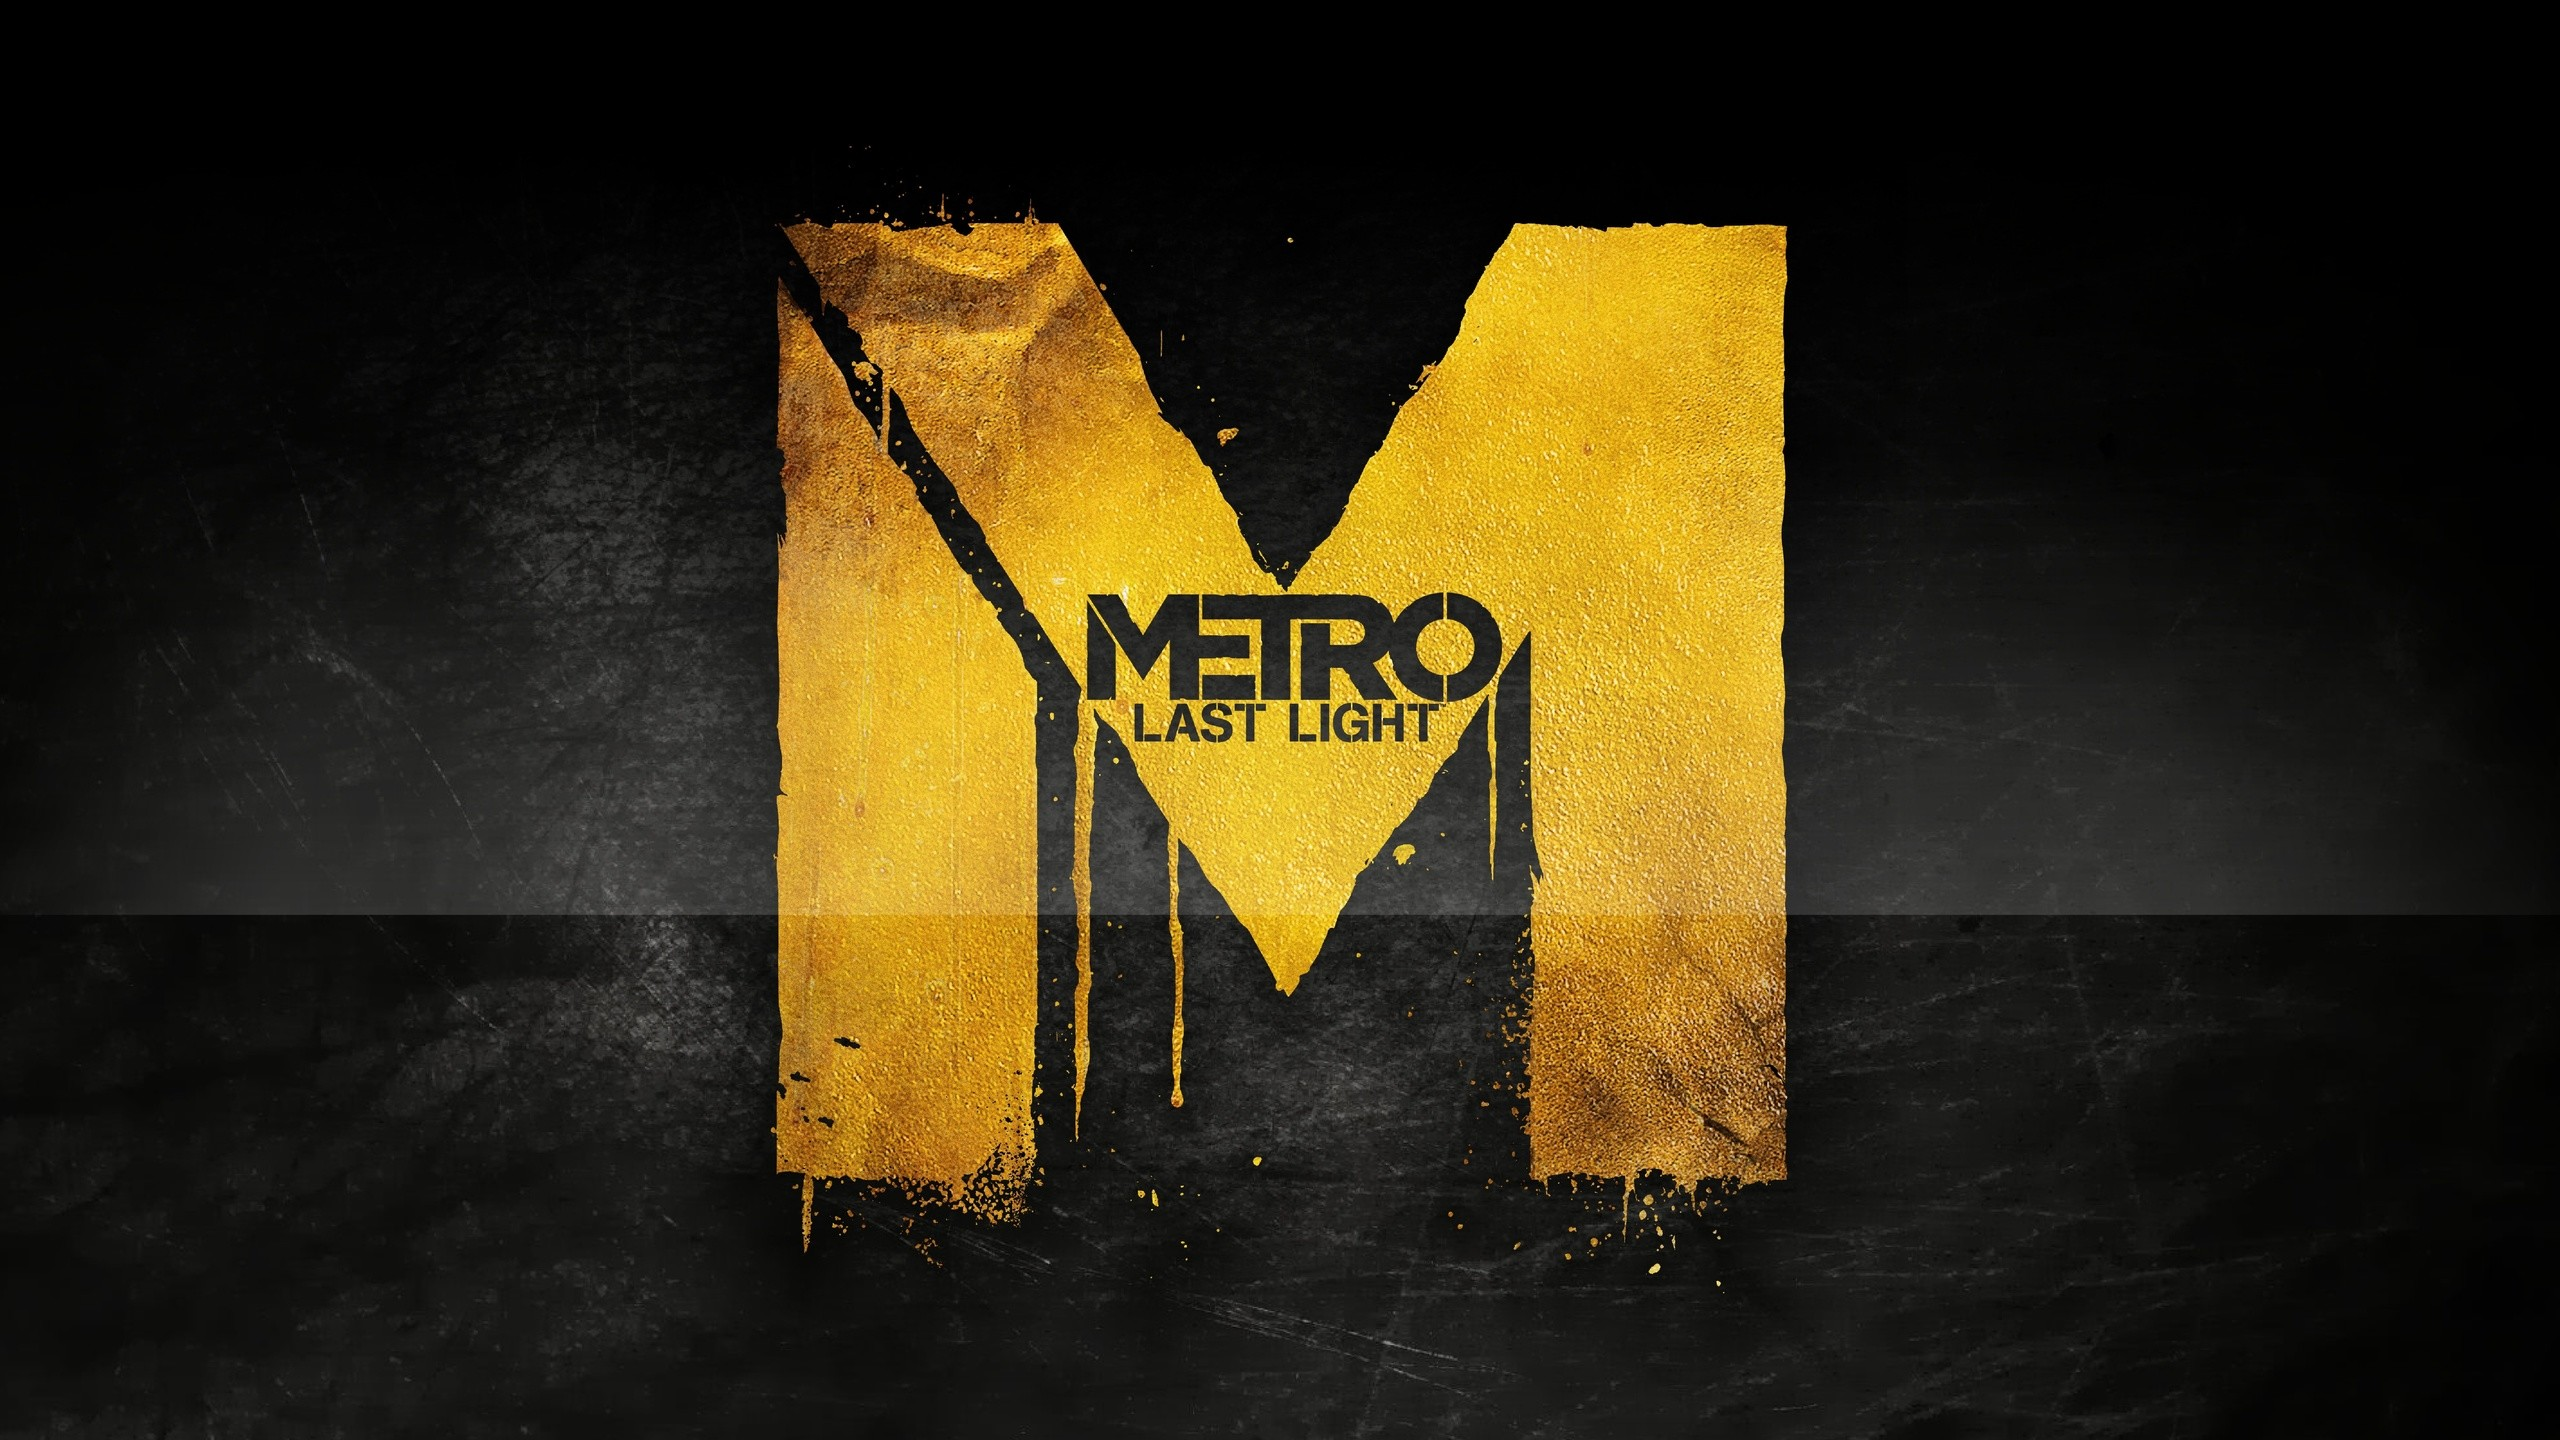 2560x1440 Nuclear War, Metro, Metro Last Light